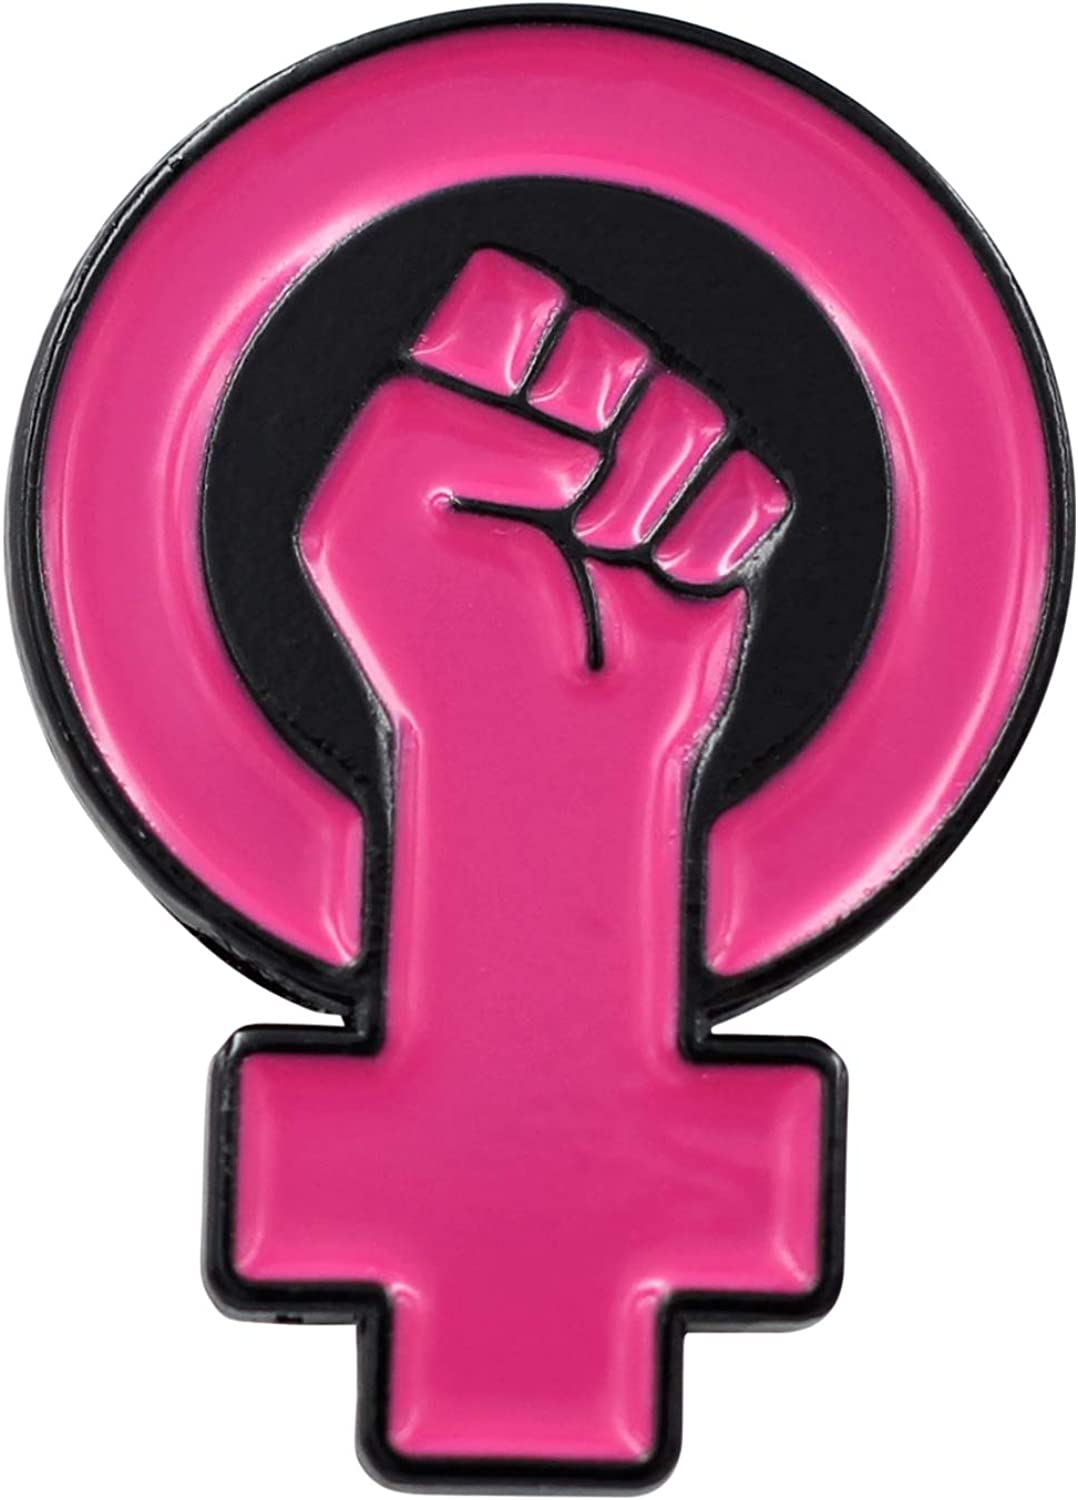 REAL SIC Women's Power Enamel Pin - Raised Feminist Fist Protest Pride Lapel Pin for Jackets, Hats, Backpacks, Bag & Tops